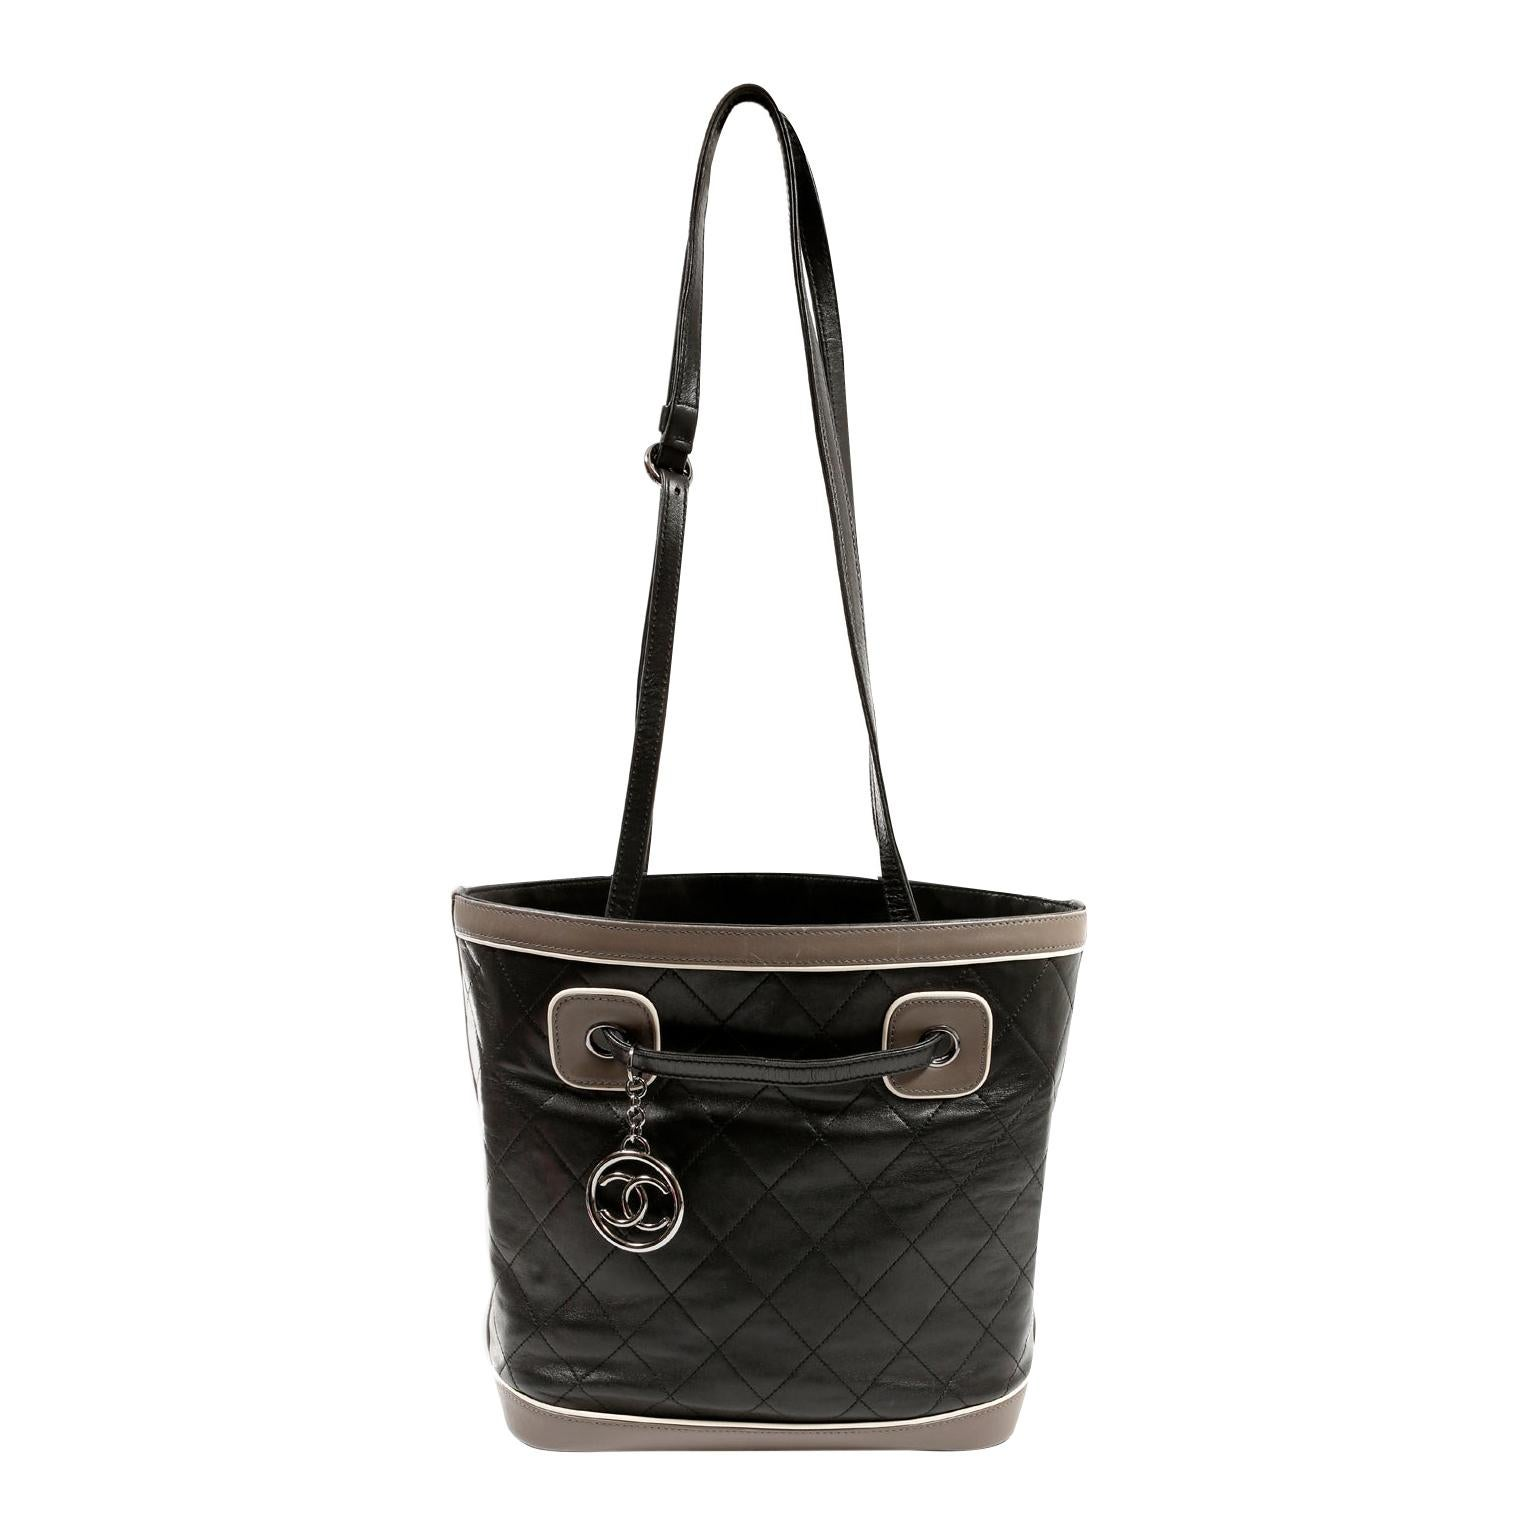 Chanel Black and Grey Quilted Leather Bucket Tote